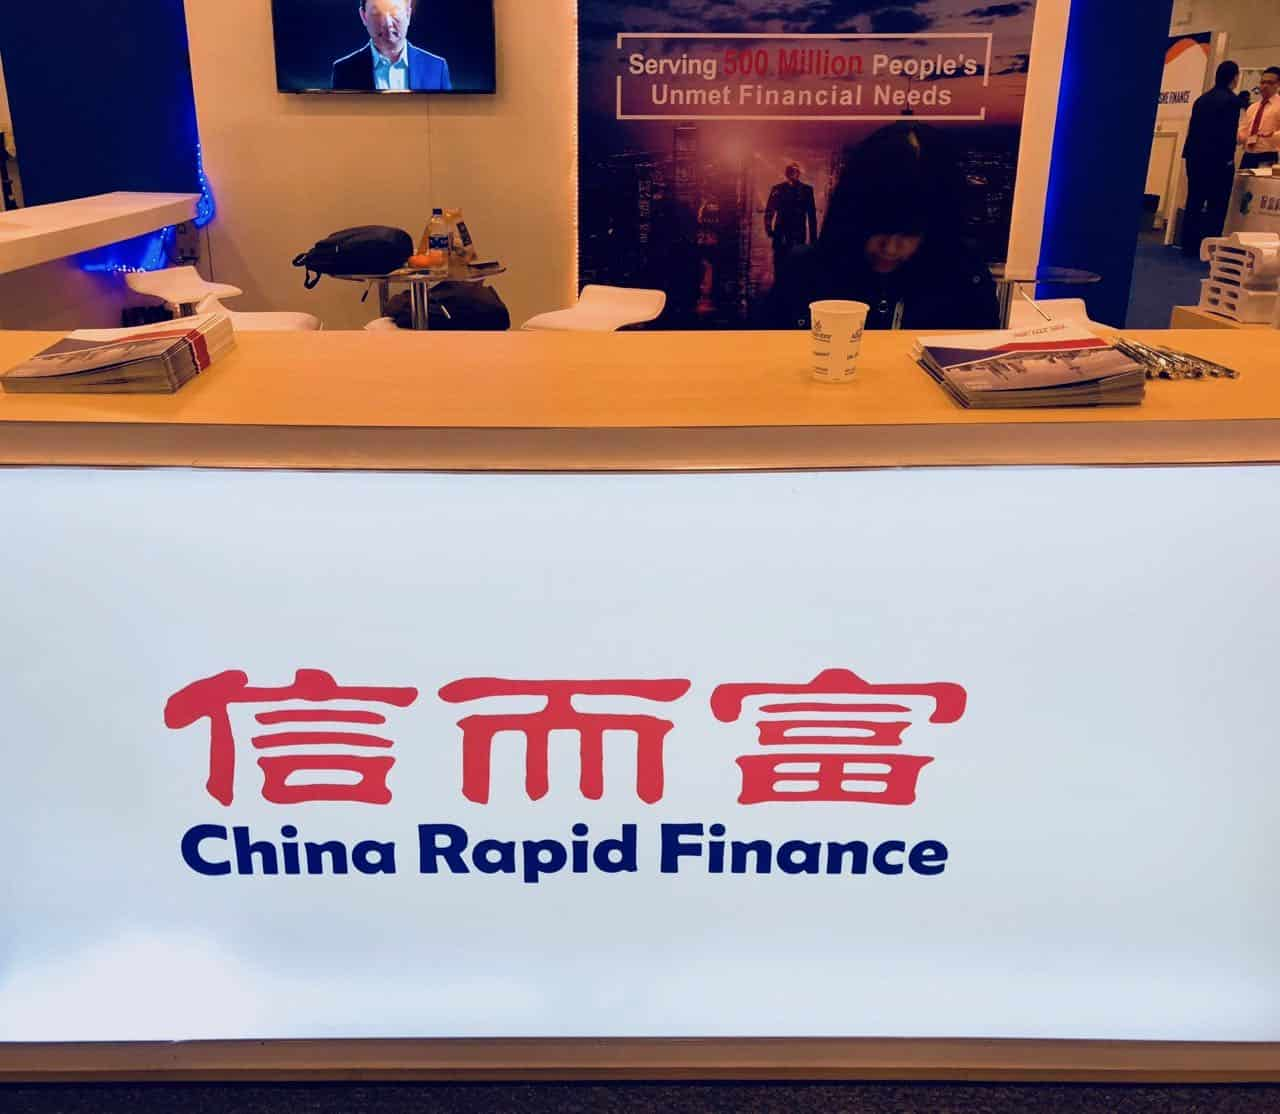 China Rapid Finance Debuts Up to $20 Million Share Repurchase Program